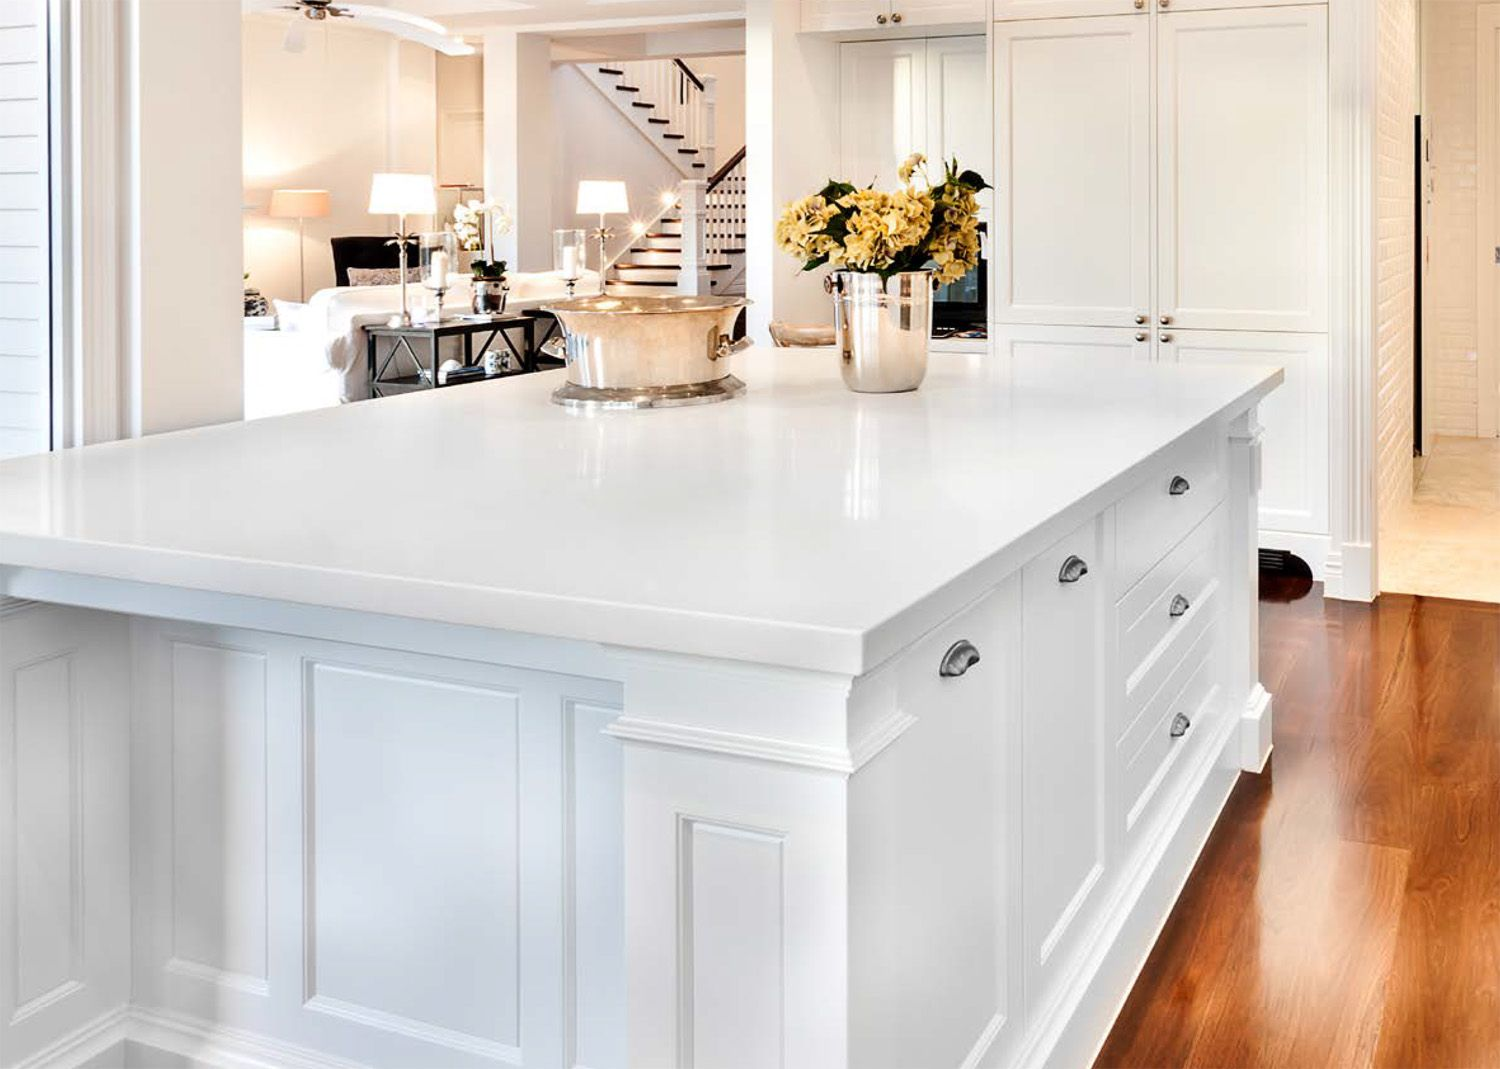 What's driving the & countertop industries? Trends